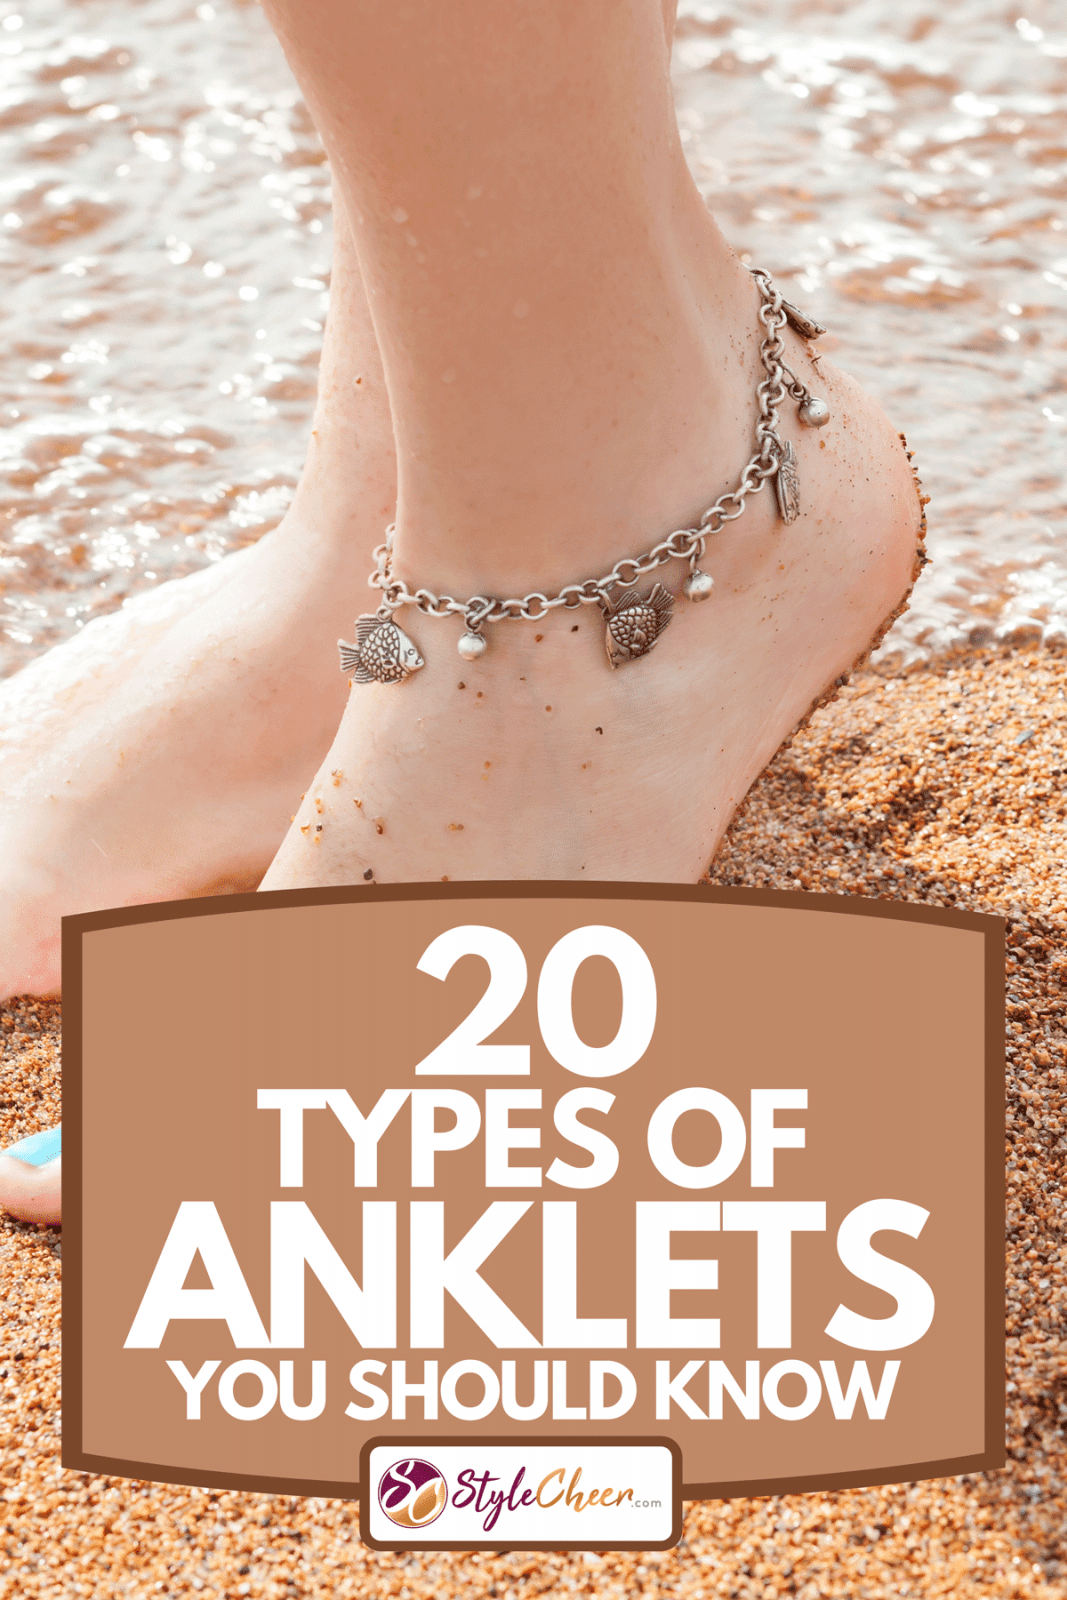 A feet of a young girl and anklet ankle, 20 Types Of Anklets You Should Know